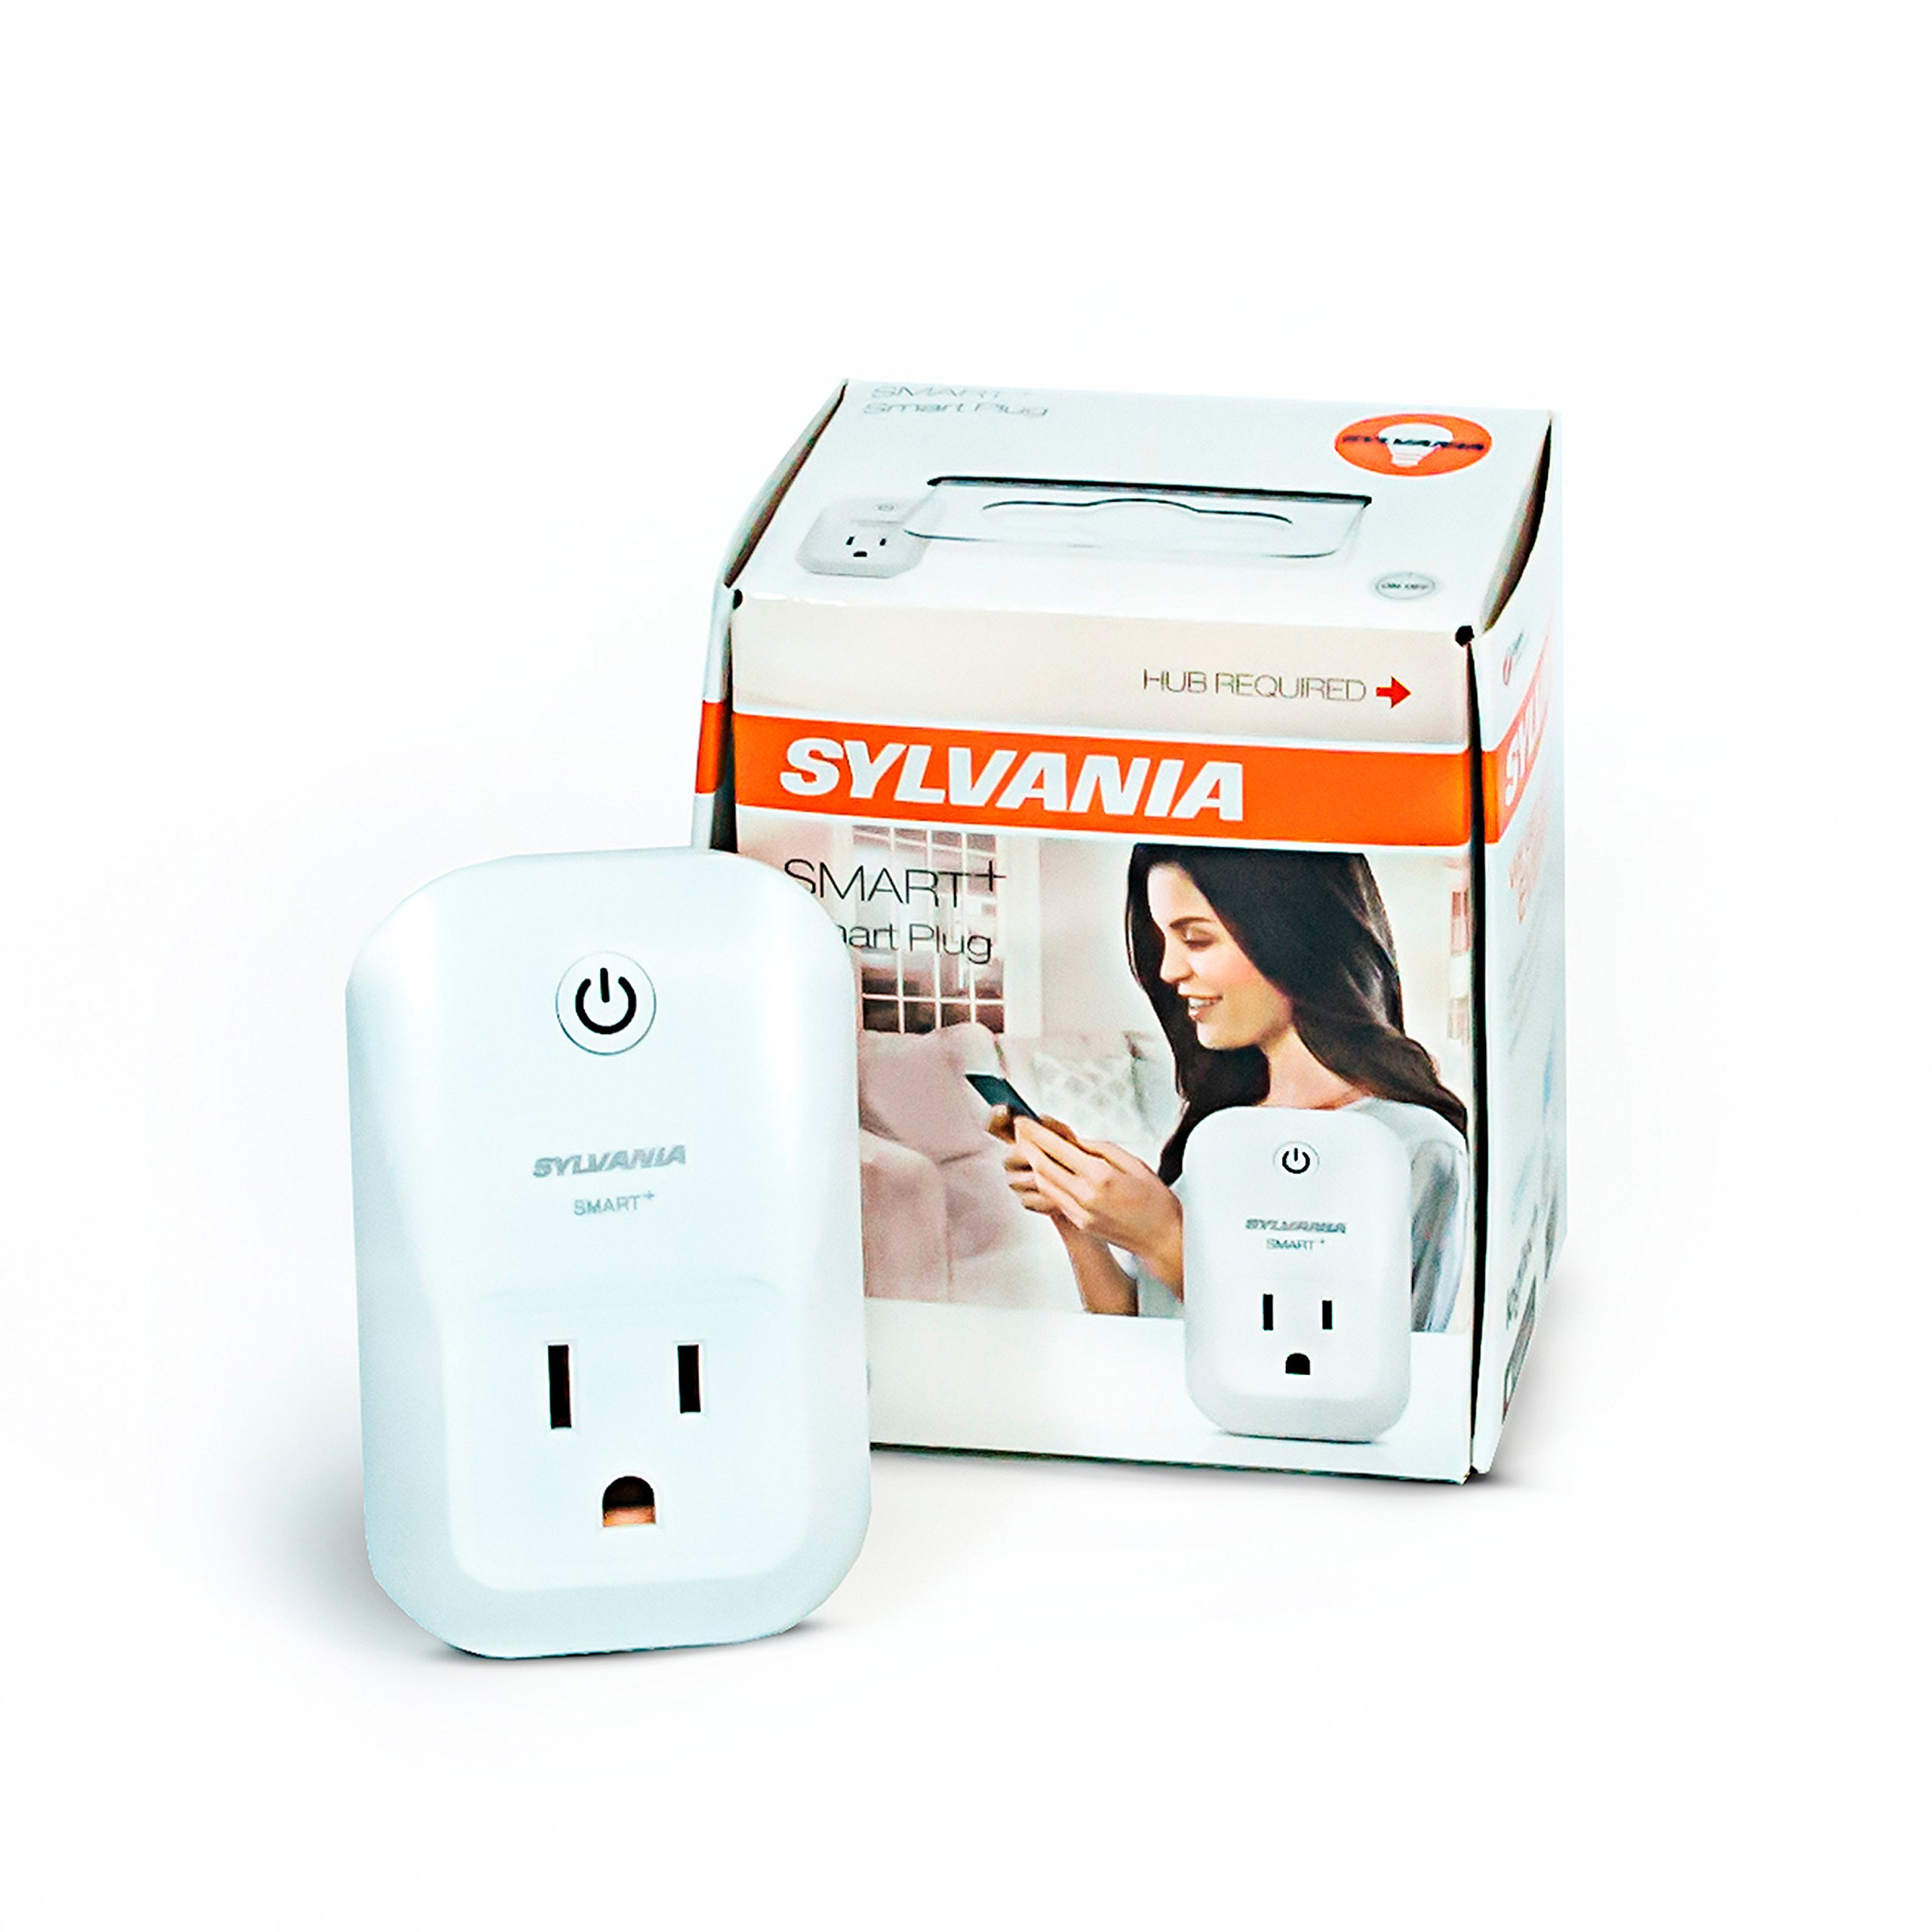 SYLVANIA SMART + ZigBee Indoor Smart Plug, Works with SmartThings, Wink, and Amazon Echo Plus, Hub Needed for Amazon Alexa and the Google Assistant by SYLVANIA